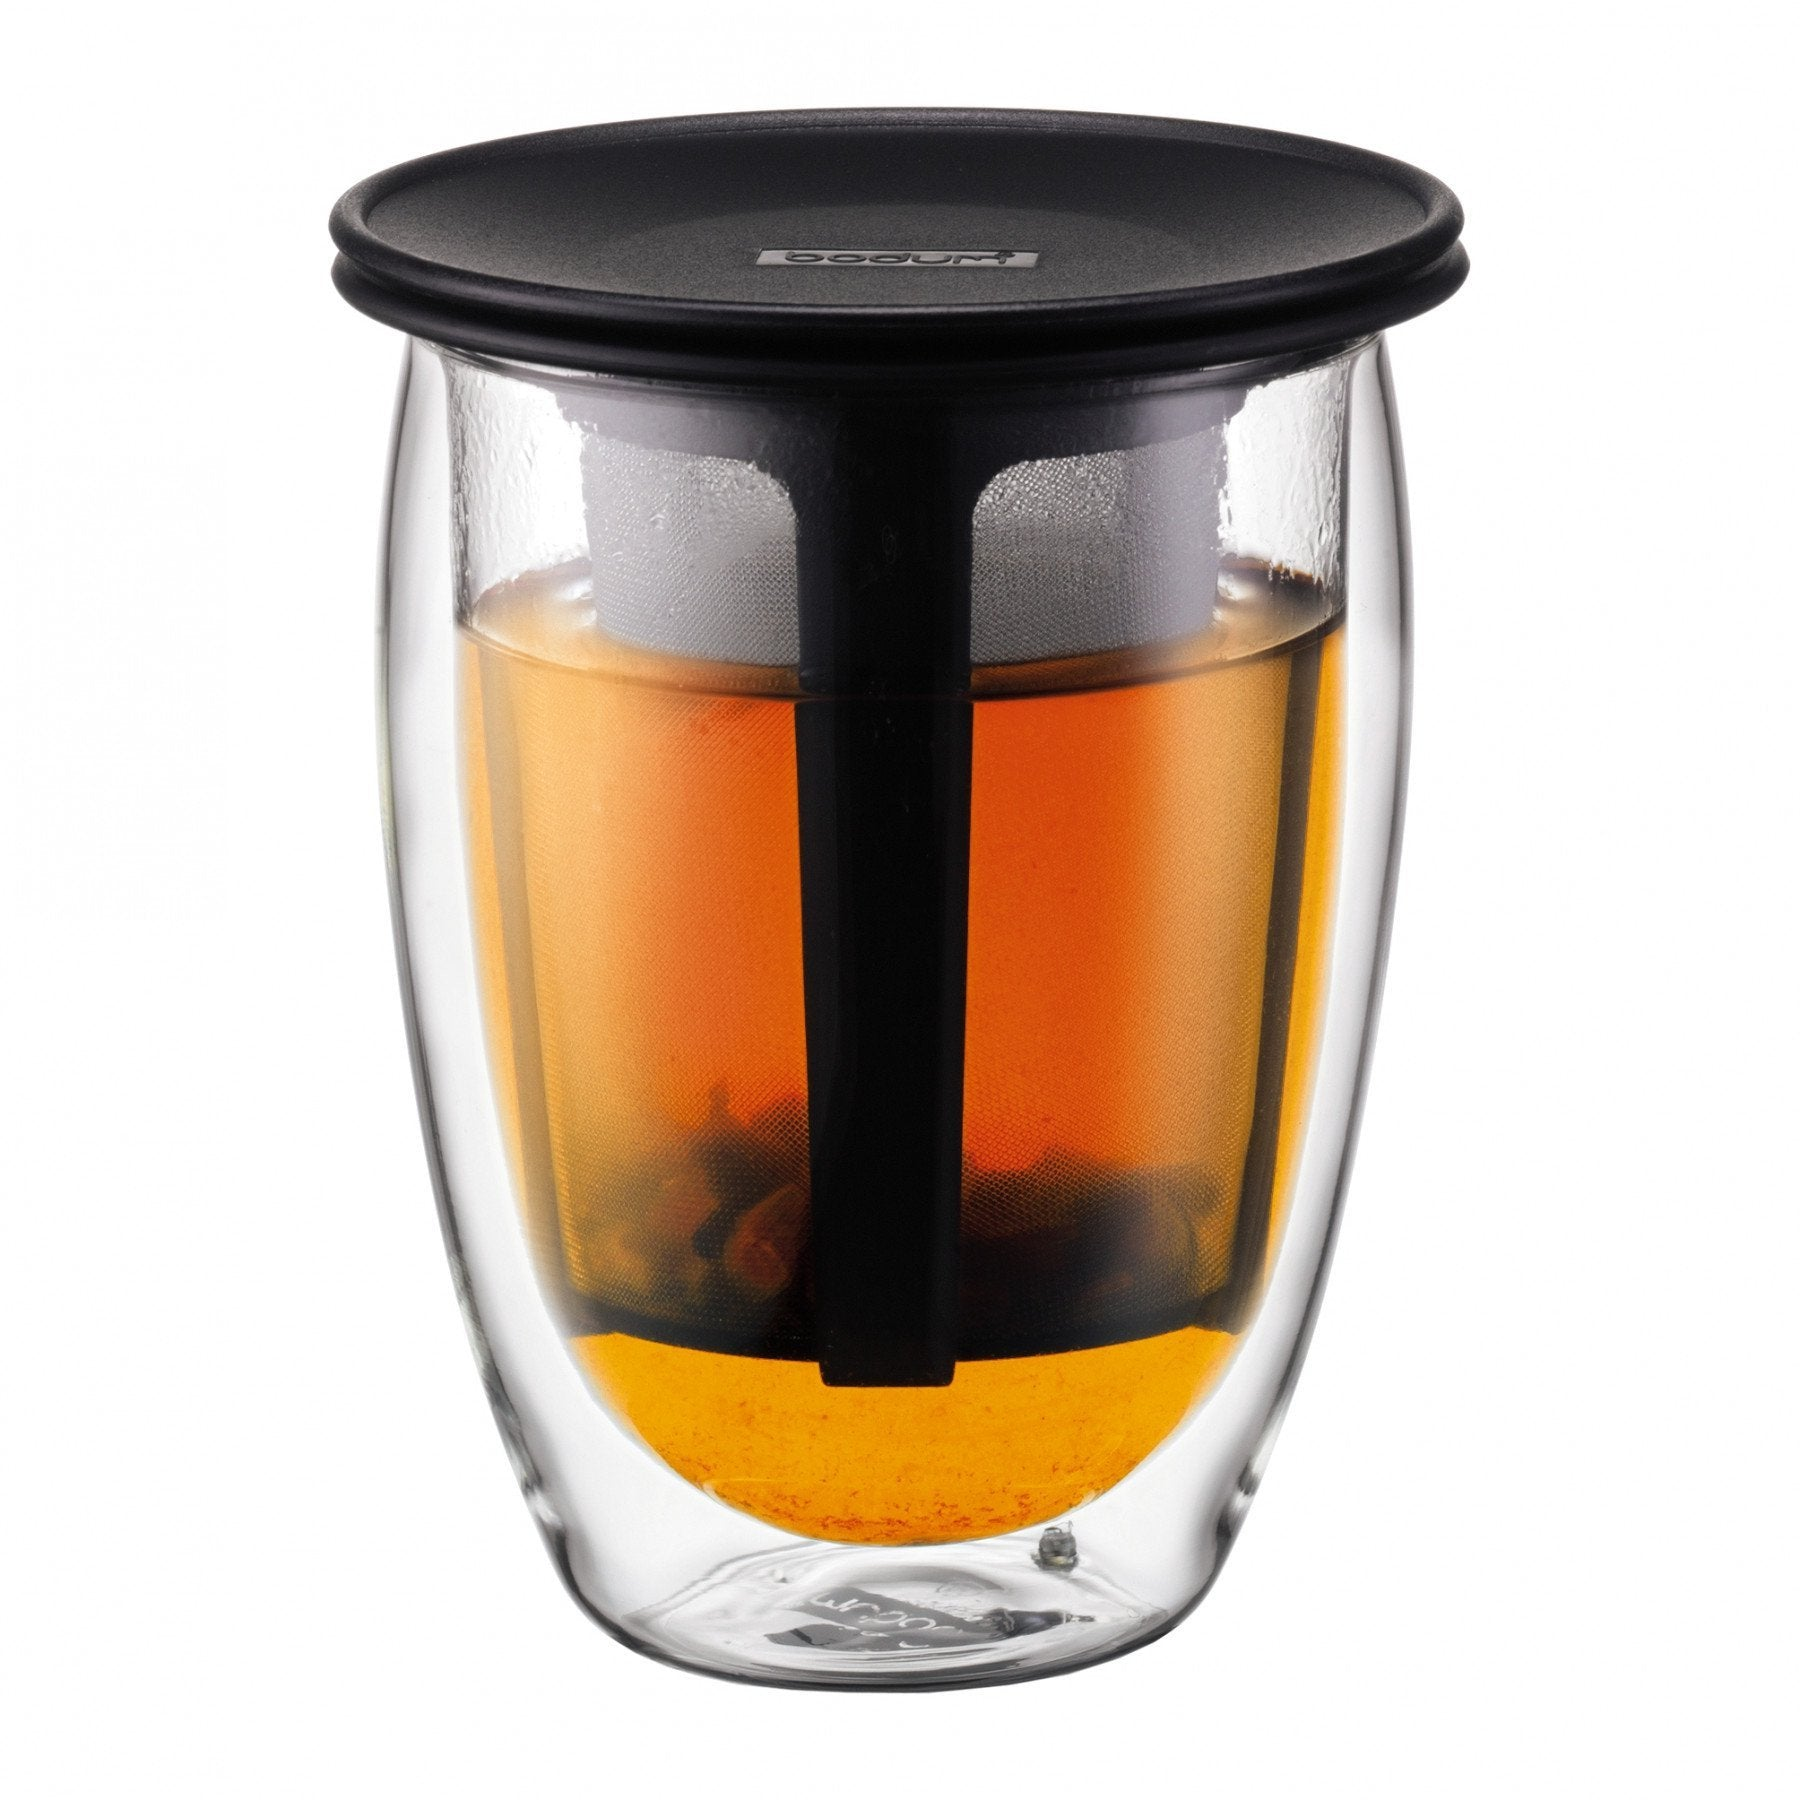 TEA FOR ONE  Glass, double wall, 0.35 l, 12 oz and tea strainer in Black